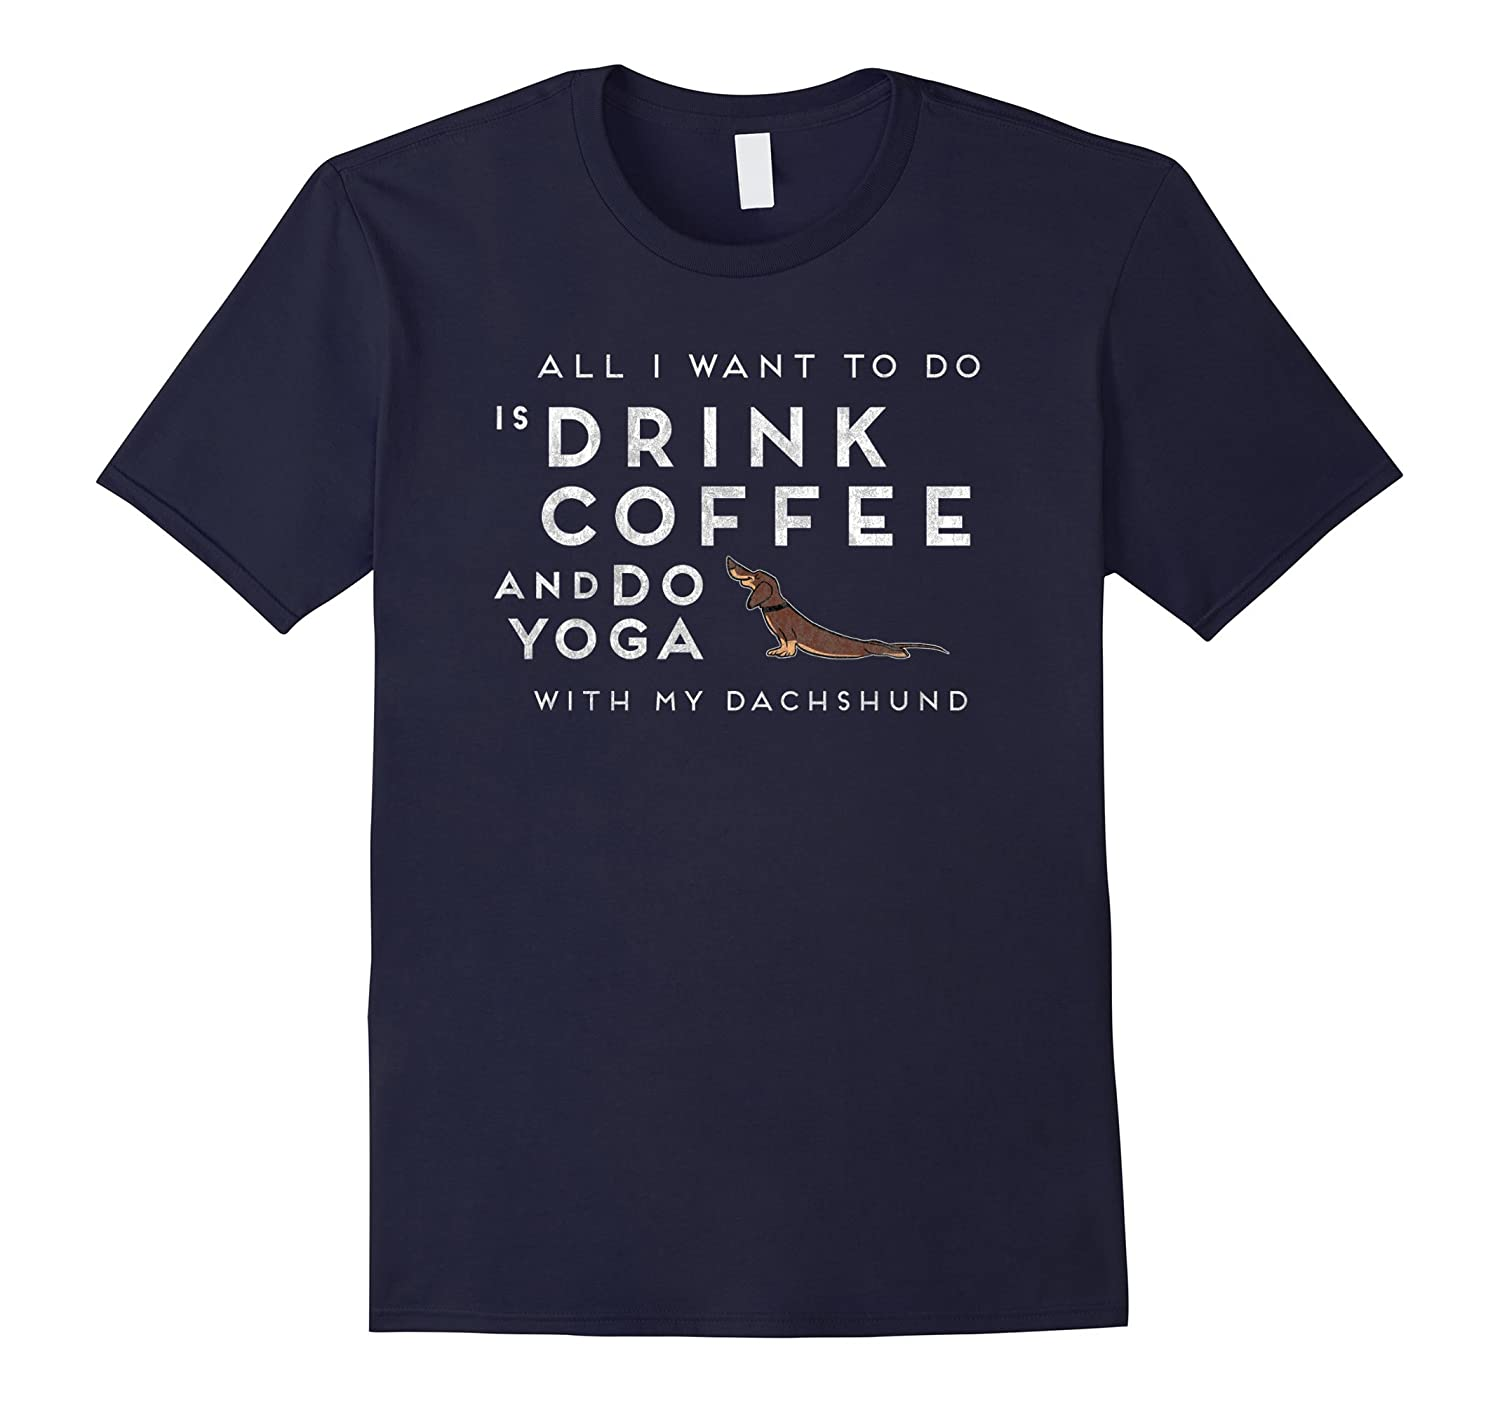 All I Want To Do Is Drink Coffee and Do Yoga Dachshund Shirt